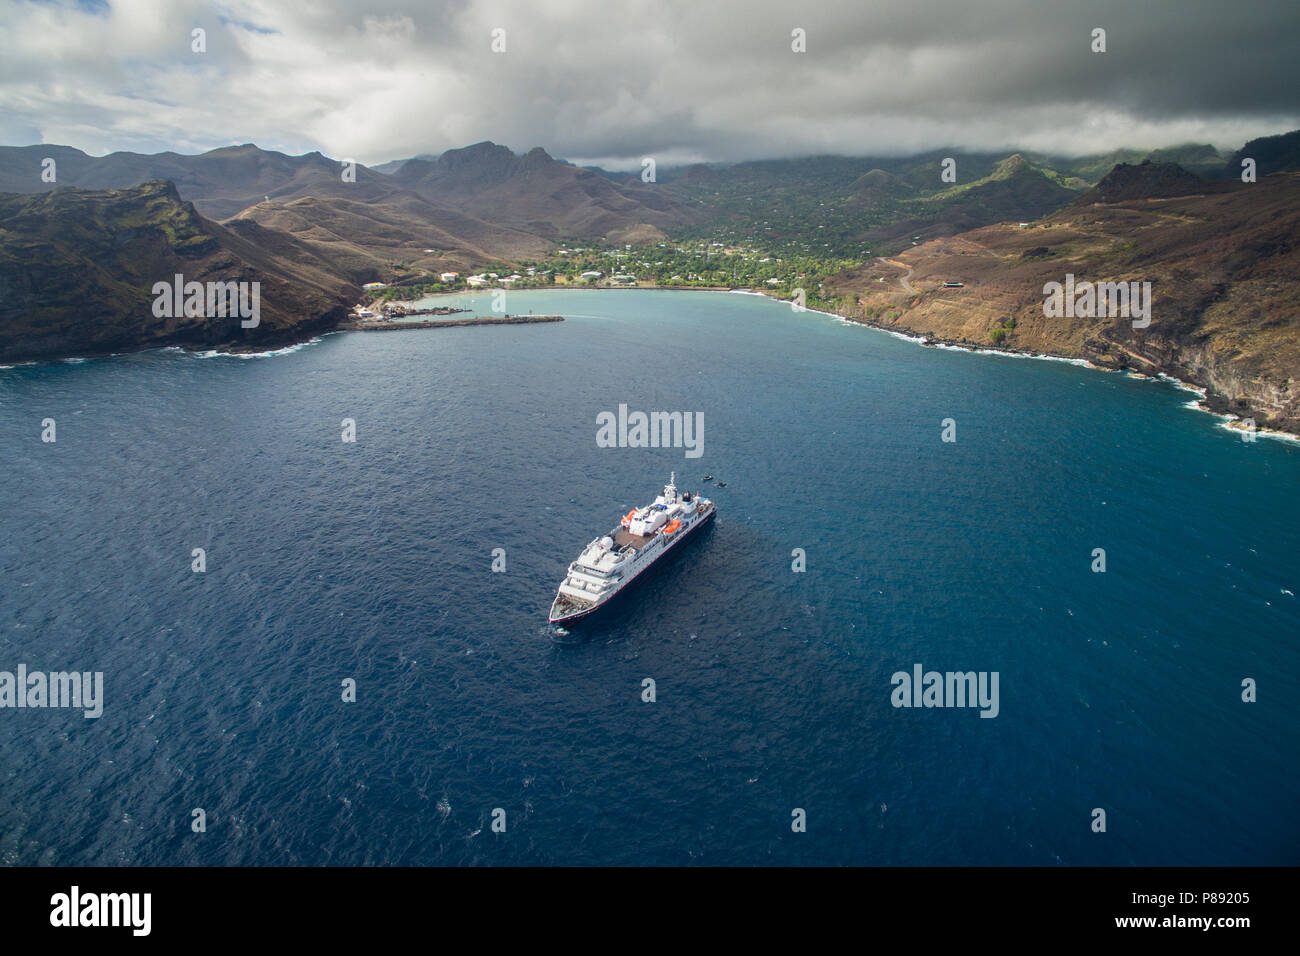 Cruise Ship anchored at Ua Pou, Marquesas Islands - Stock Image